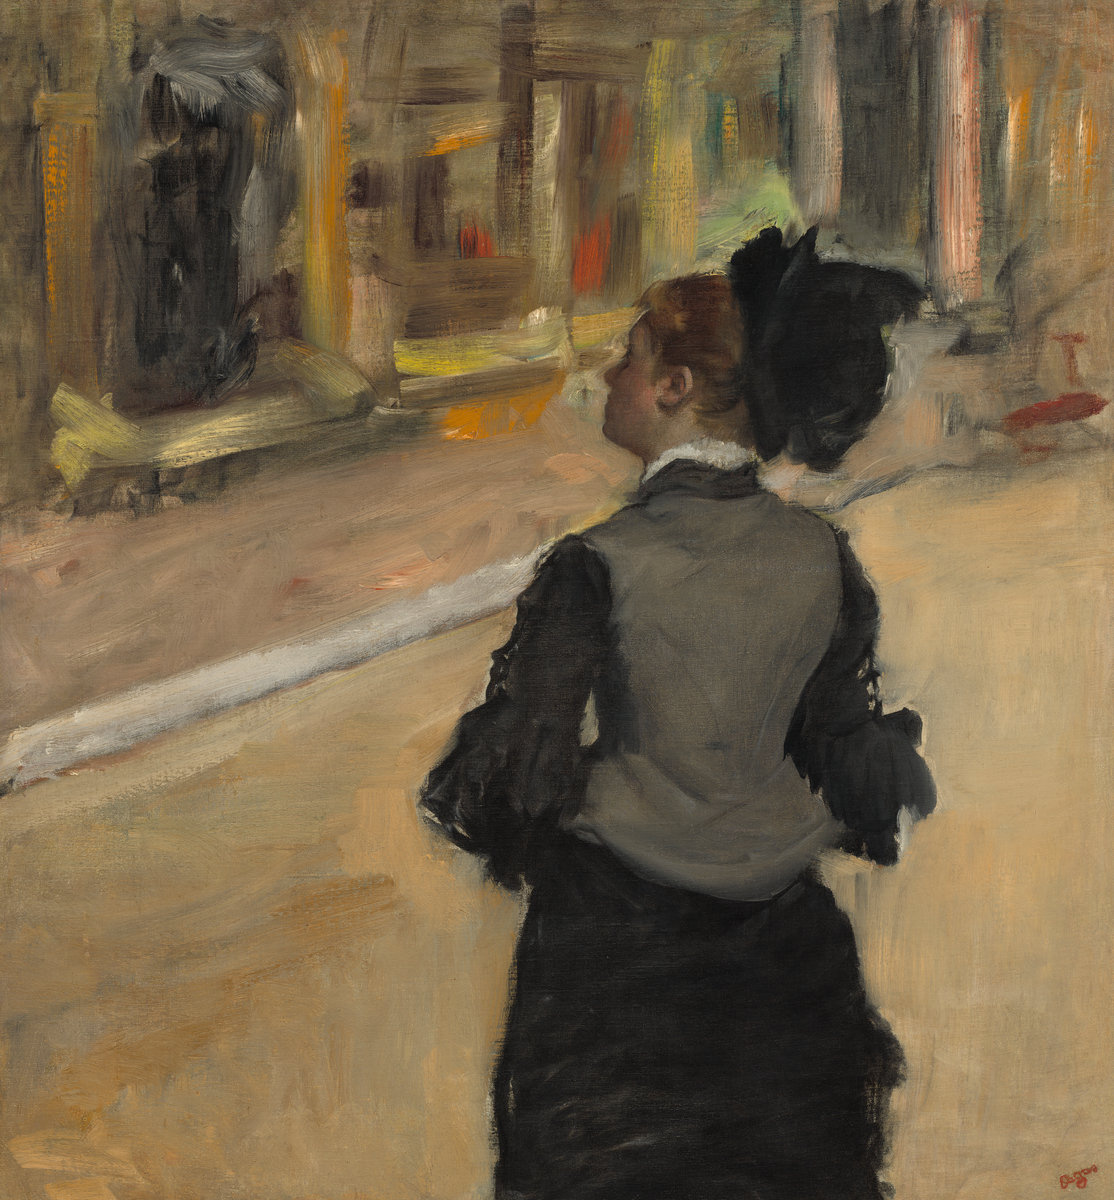 Edgar Degas. A visit to the Museum